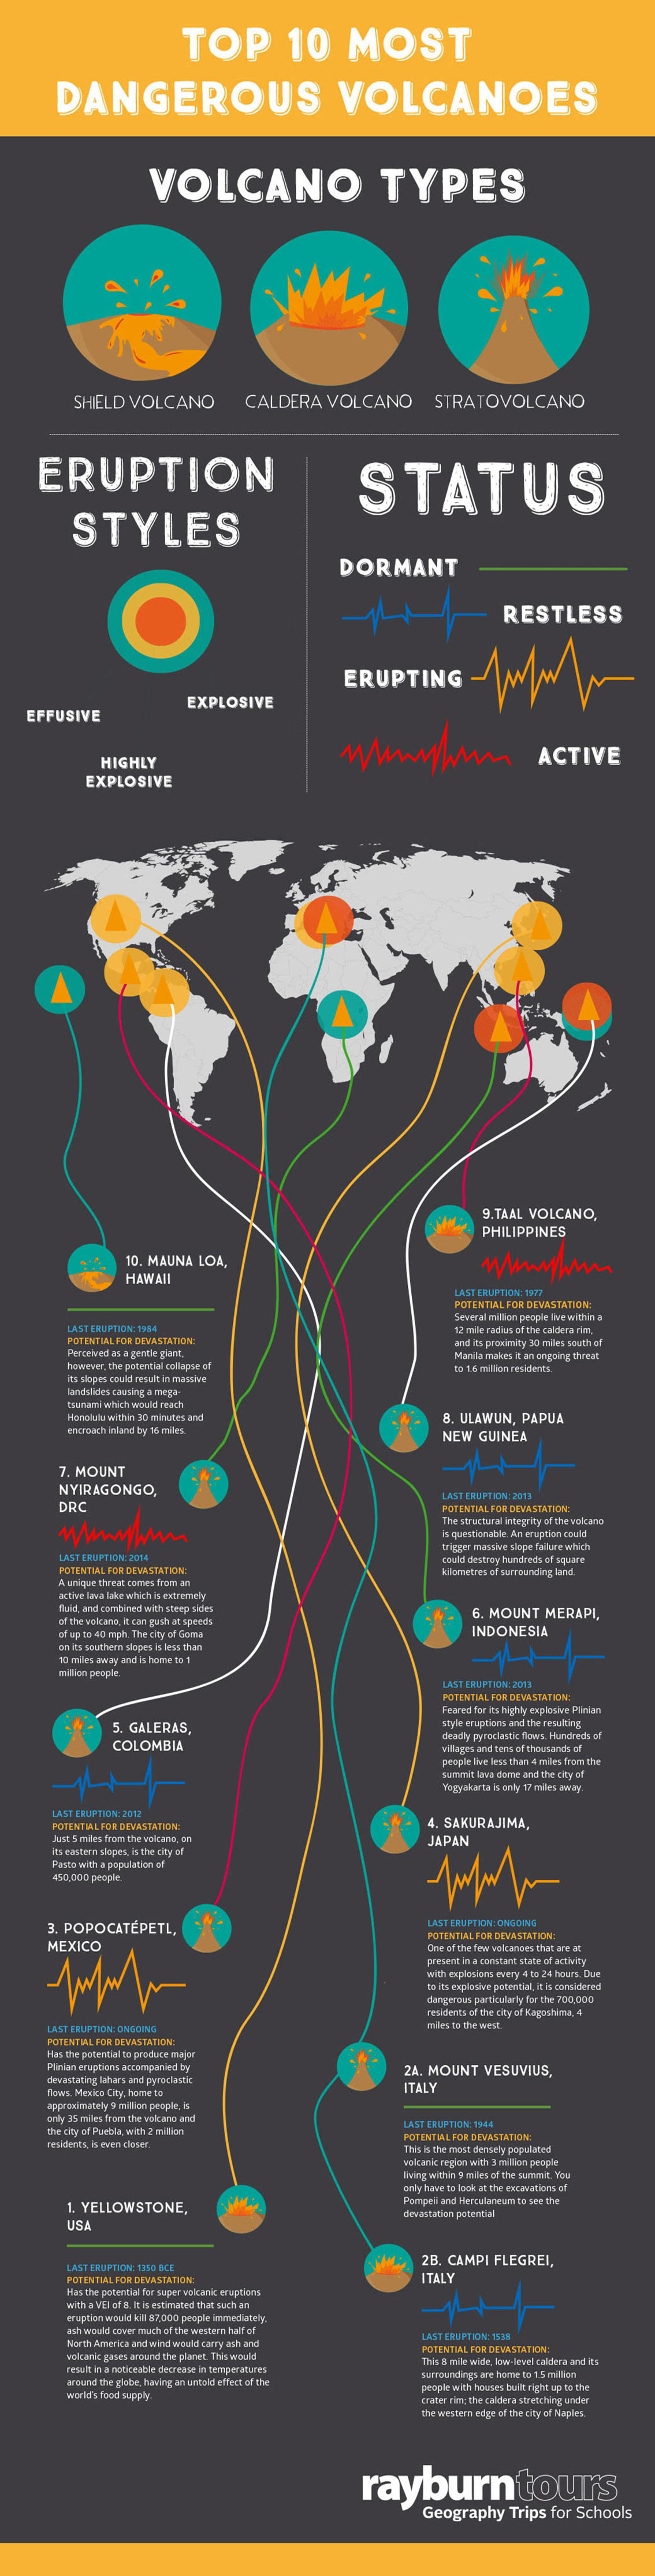 Top 10 Deadliest Volcanoes Infographic